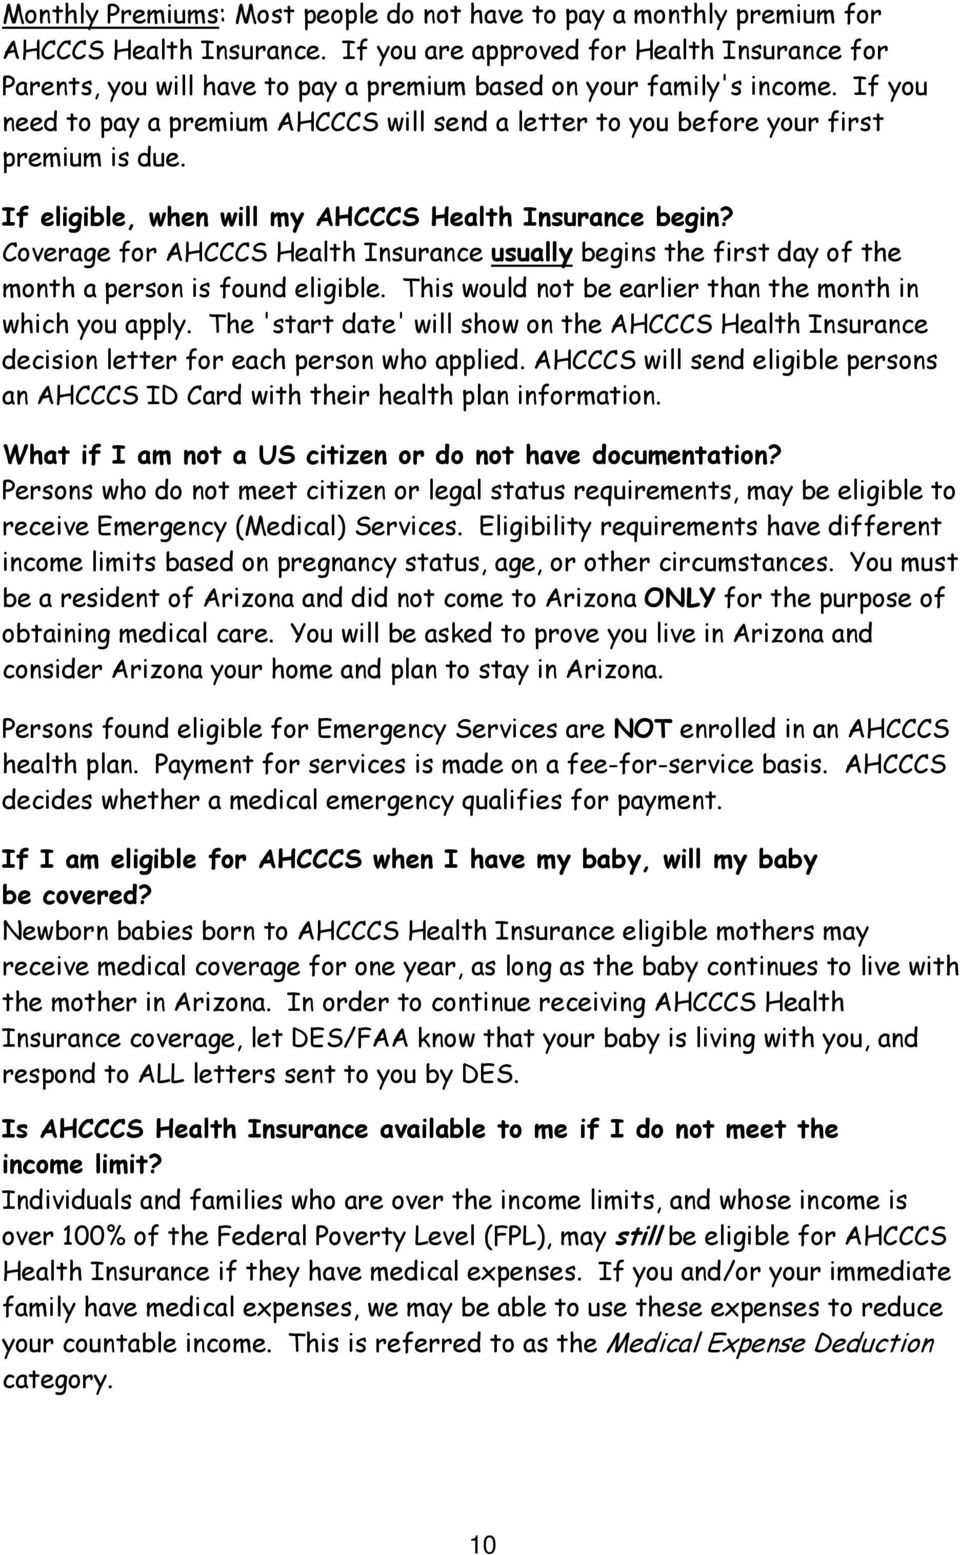 If you need to pay a premium AHCCCS will send a letter to you before your first premium is due. If eligible, when will my AHCCCS Health Insurance begin?